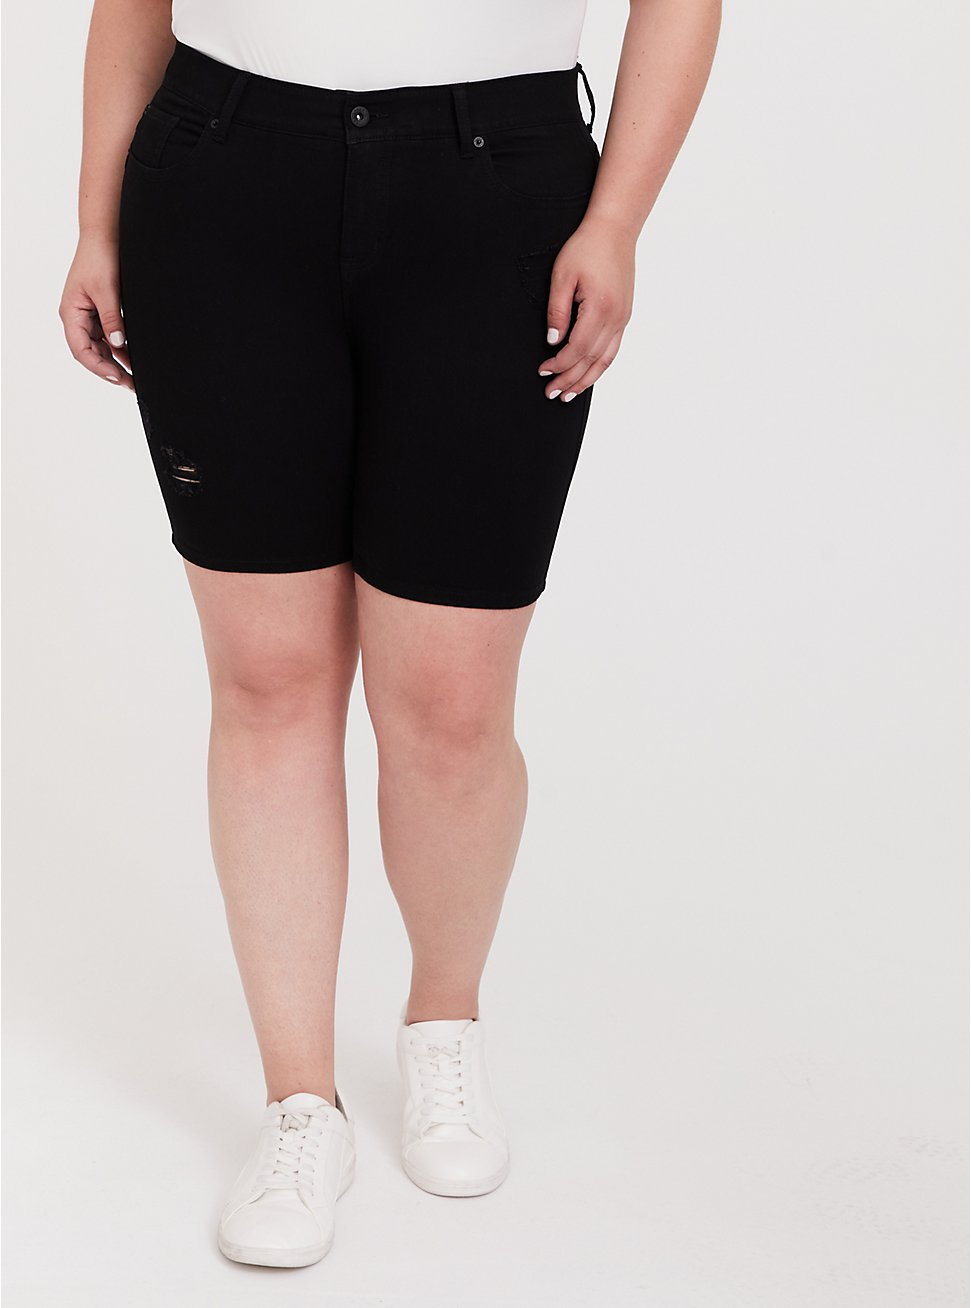 Bombshell Bermuda Short - Premium Stretch Black, BLACK, hi-res